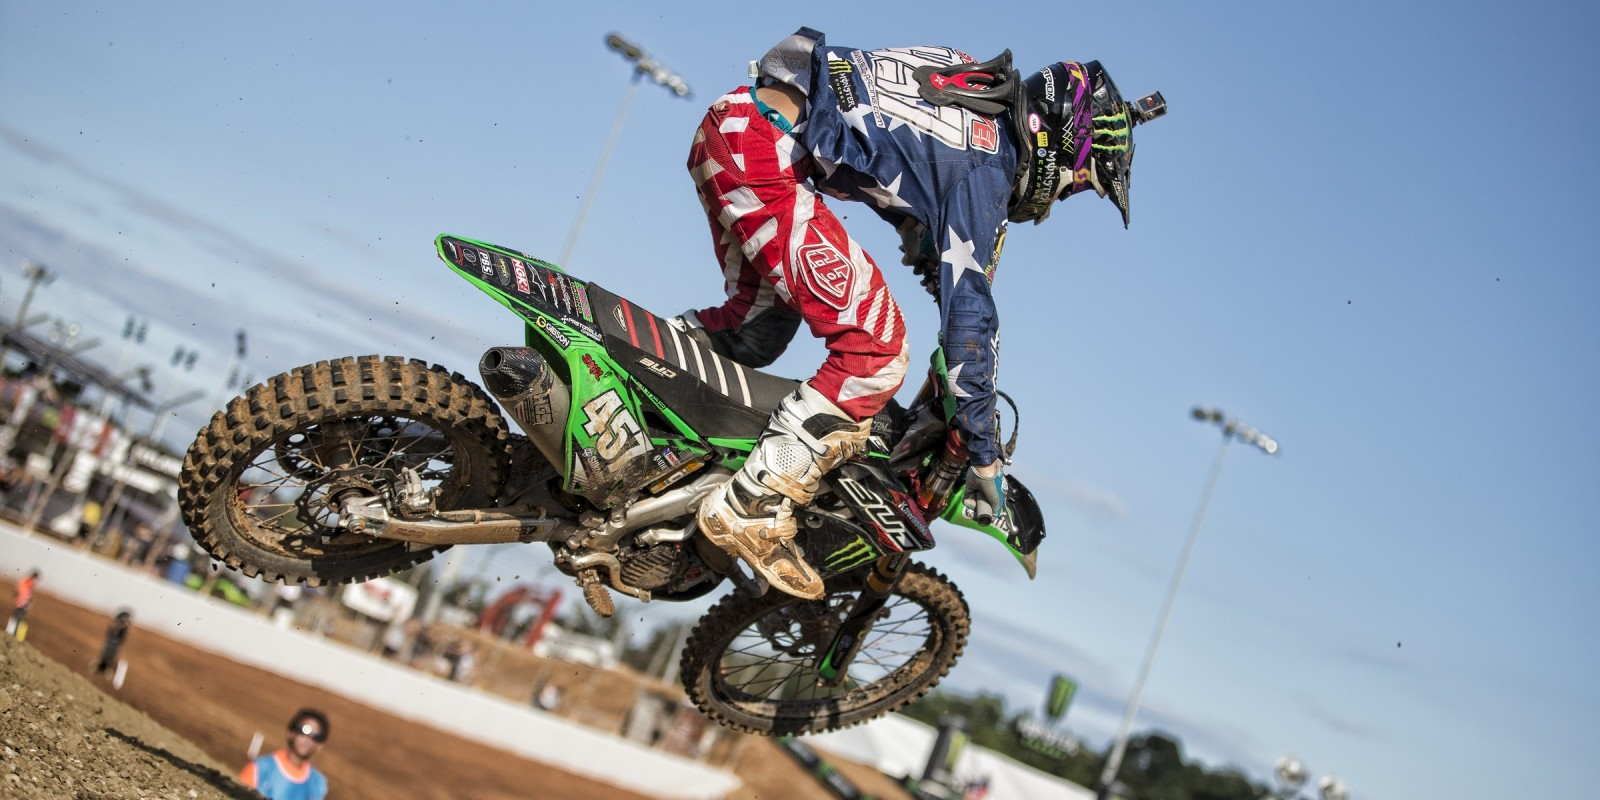 Darian Sanayei at the 2016 Monster Energy MXGP of Americas